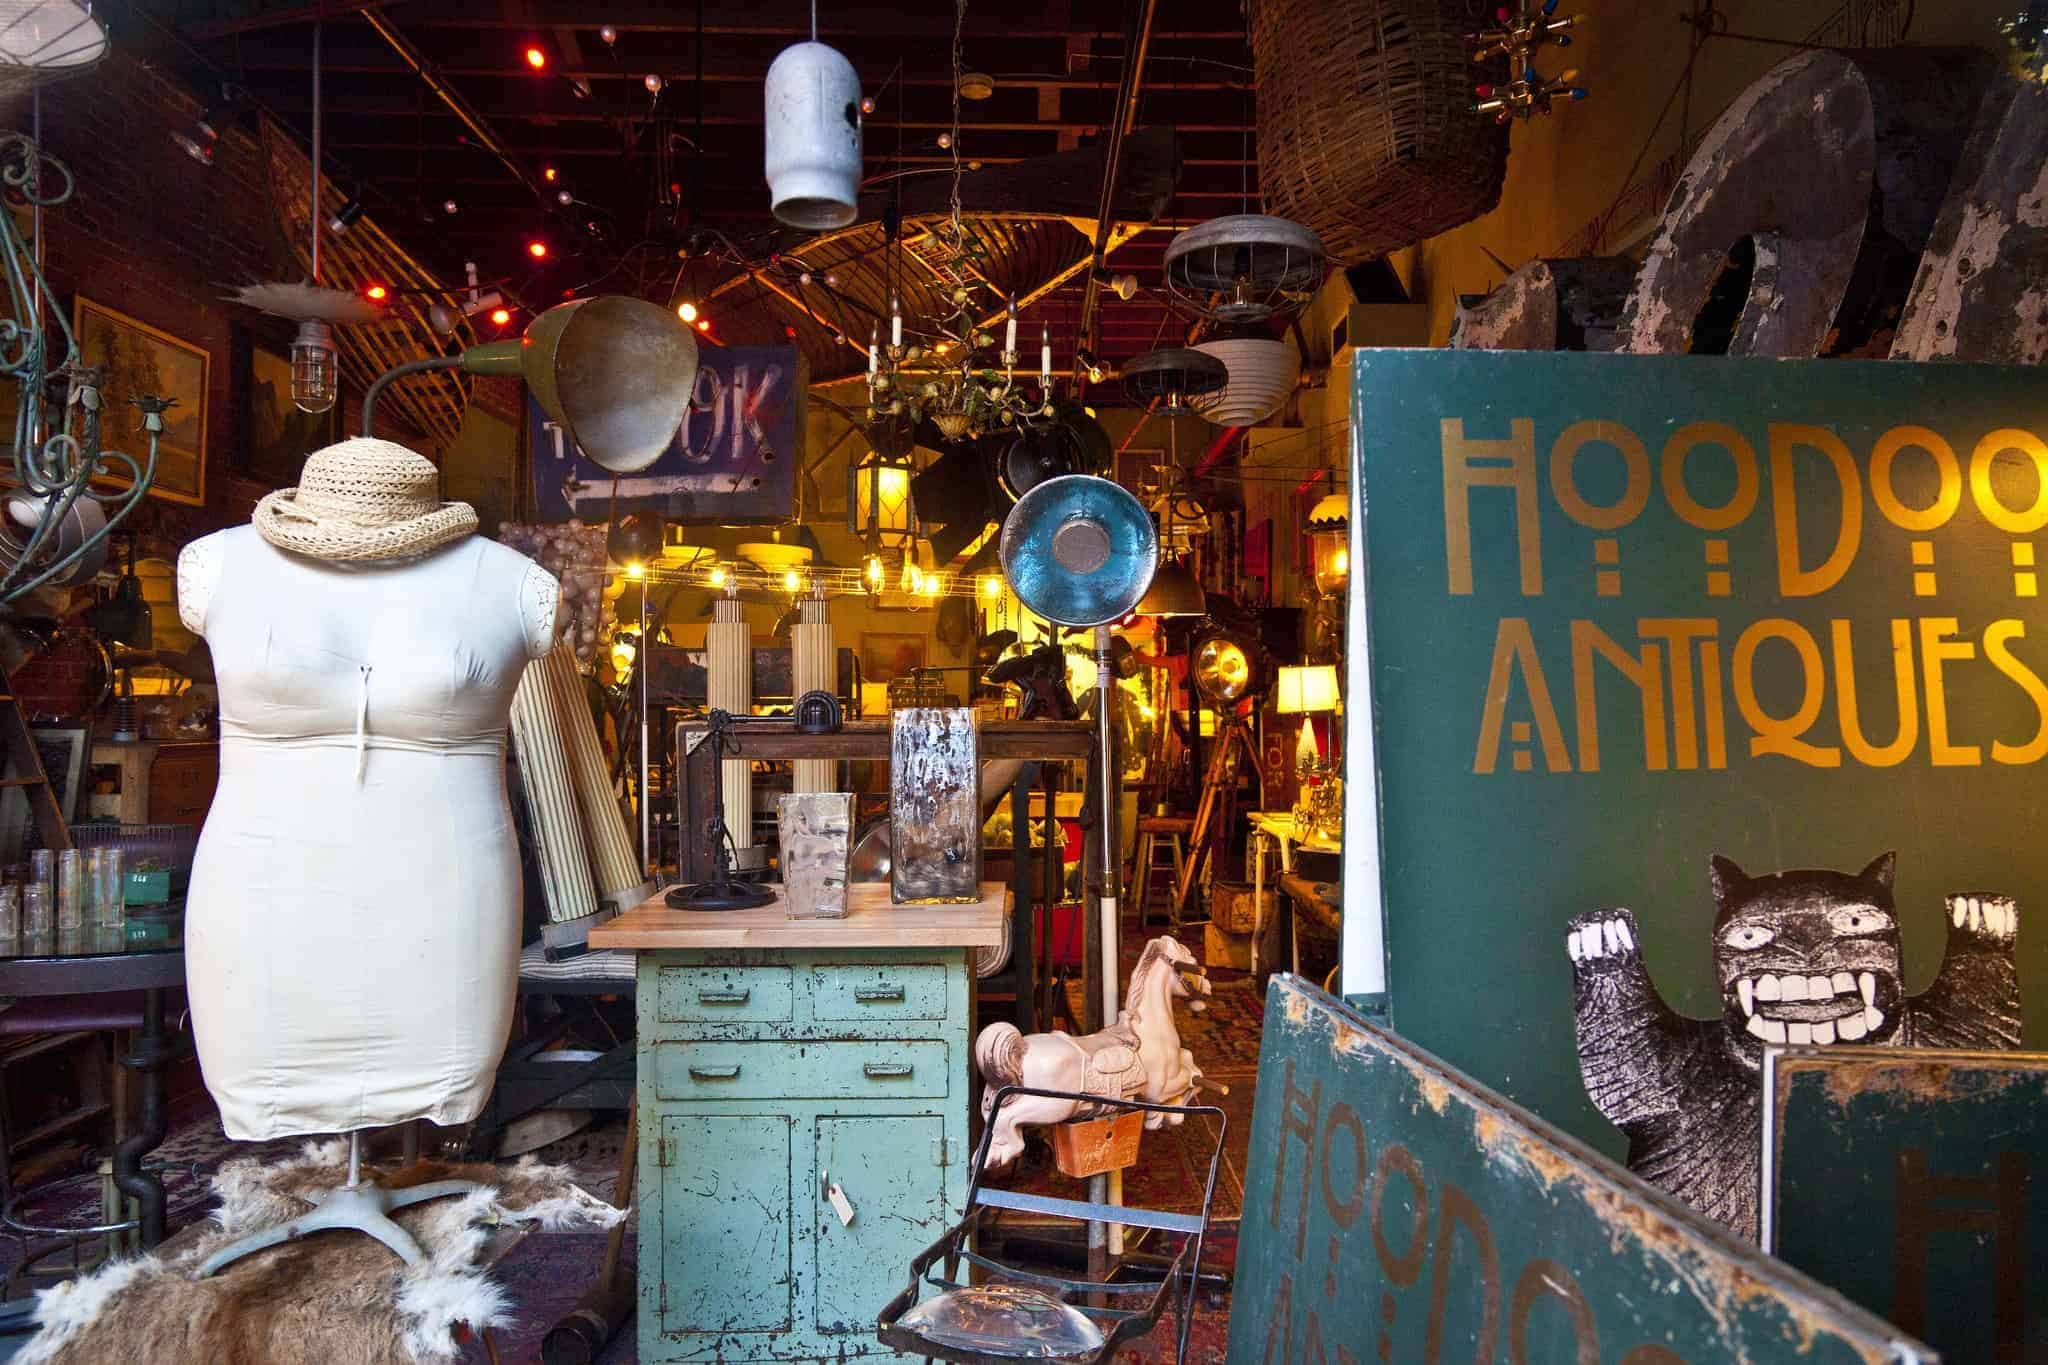 Haunted Portland - Hoodoo Antiques